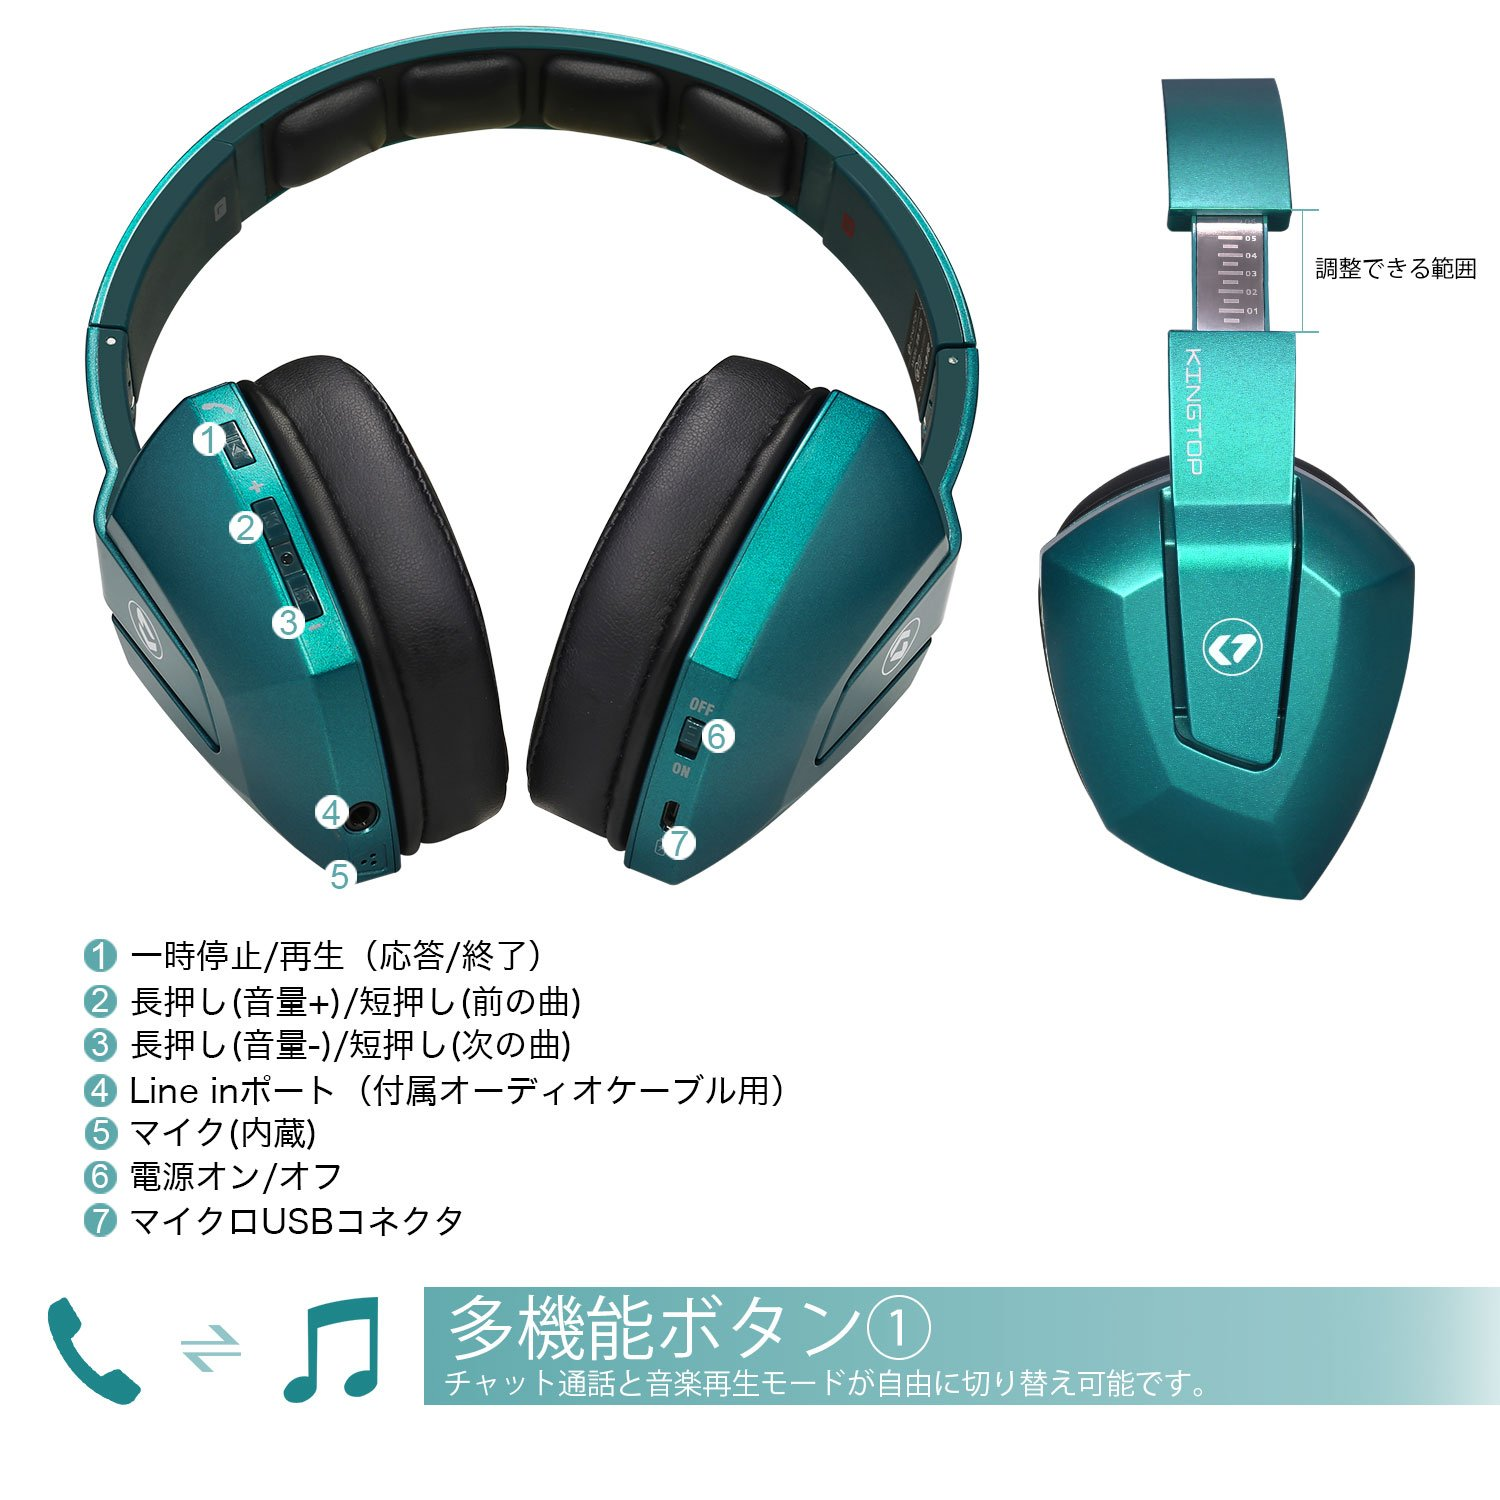 Video Games & Consoles Miku 232 Vinyl Cover Skin Sticker For Xbox One & Kinect & 2 Controller Skins High Resilience Video Game Accessories